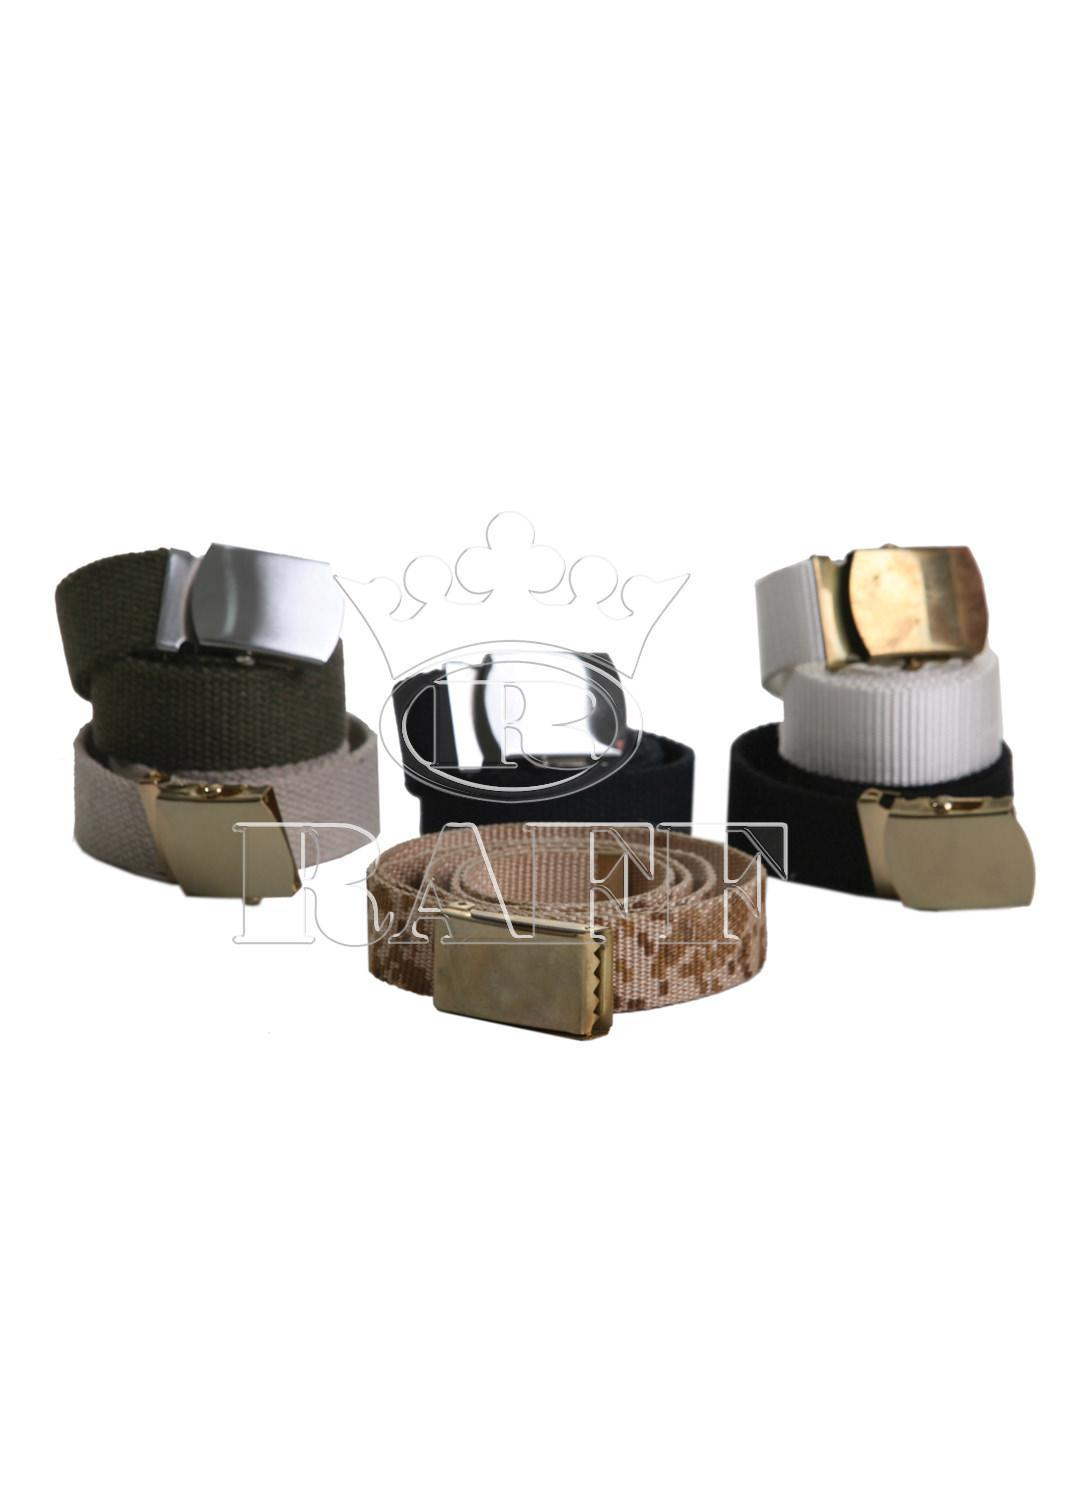 Soldier Belts